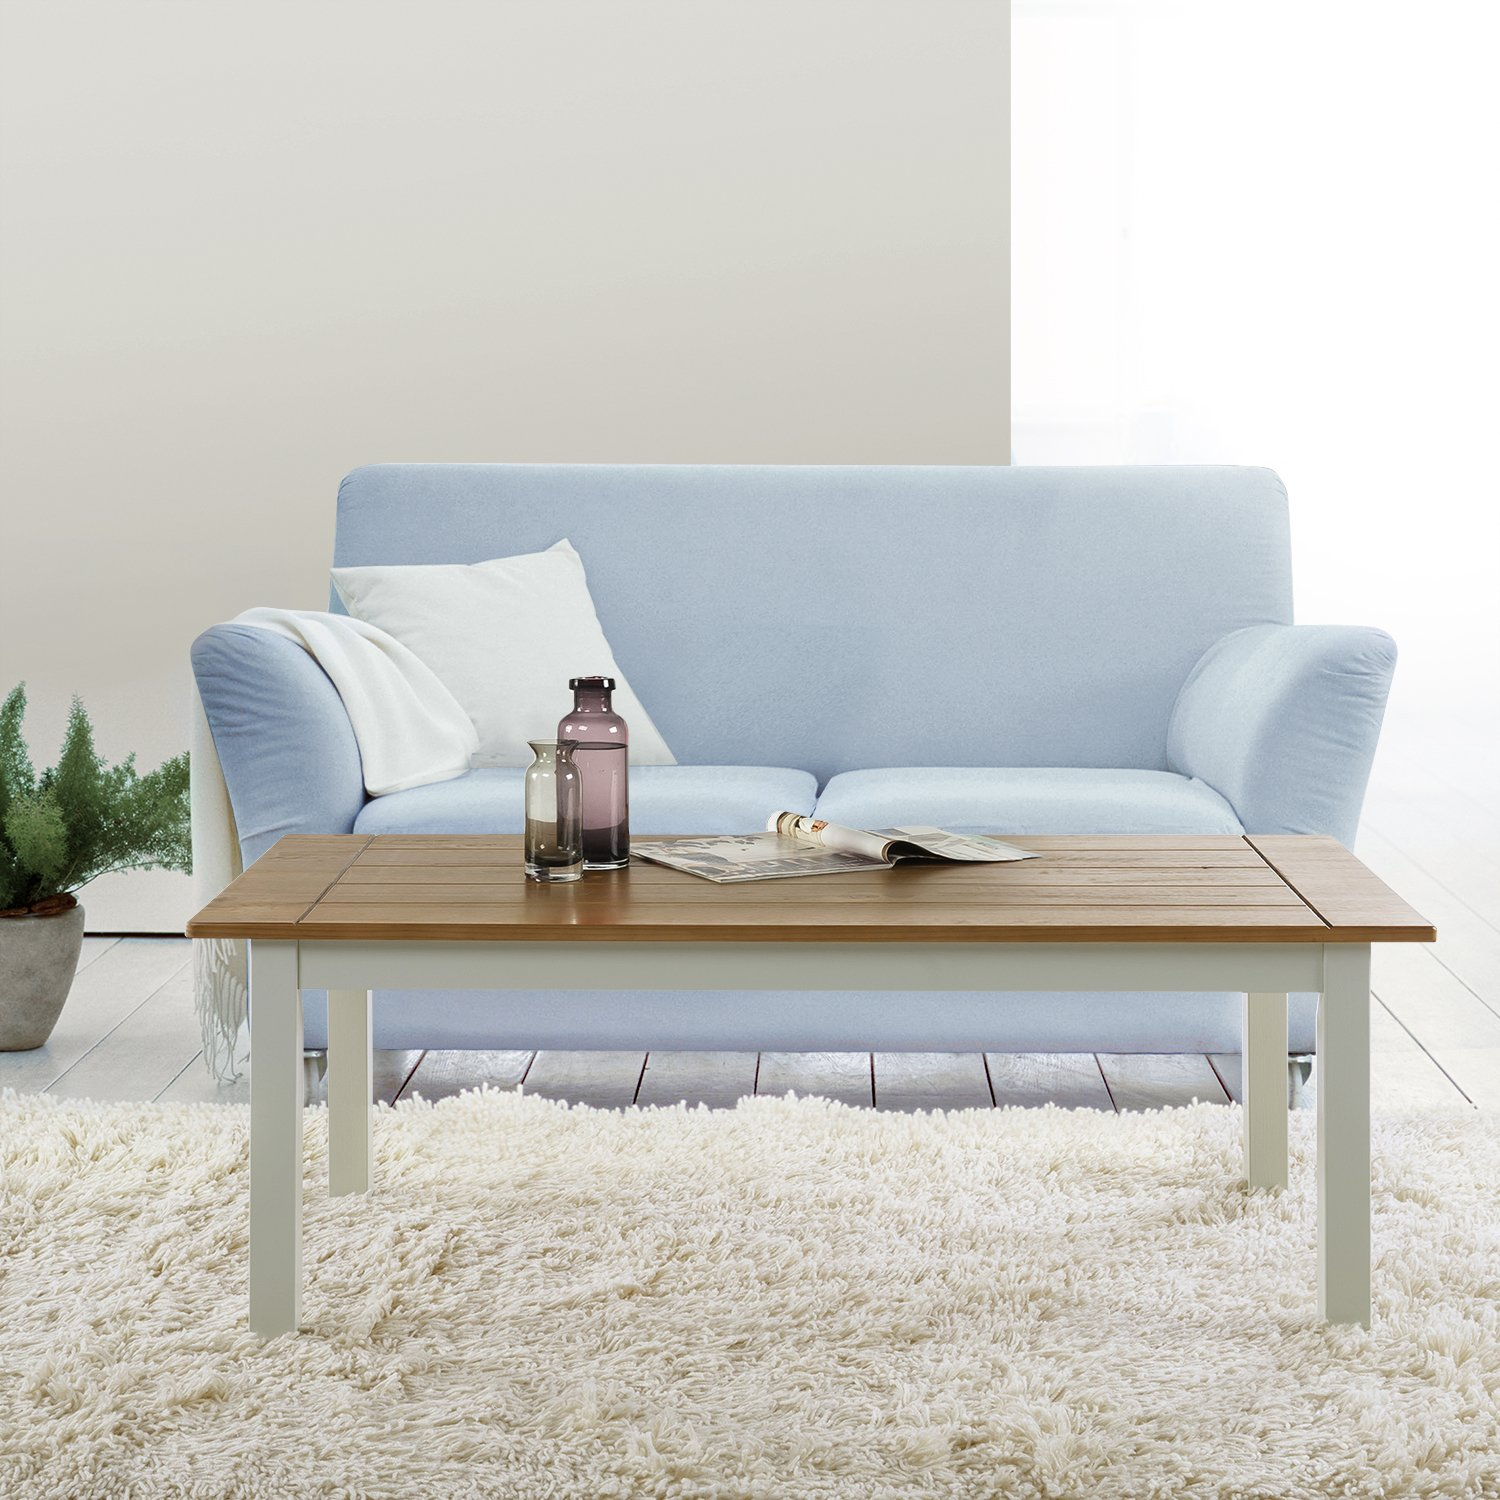 Zinus Farmhouse Wood Coffee Table